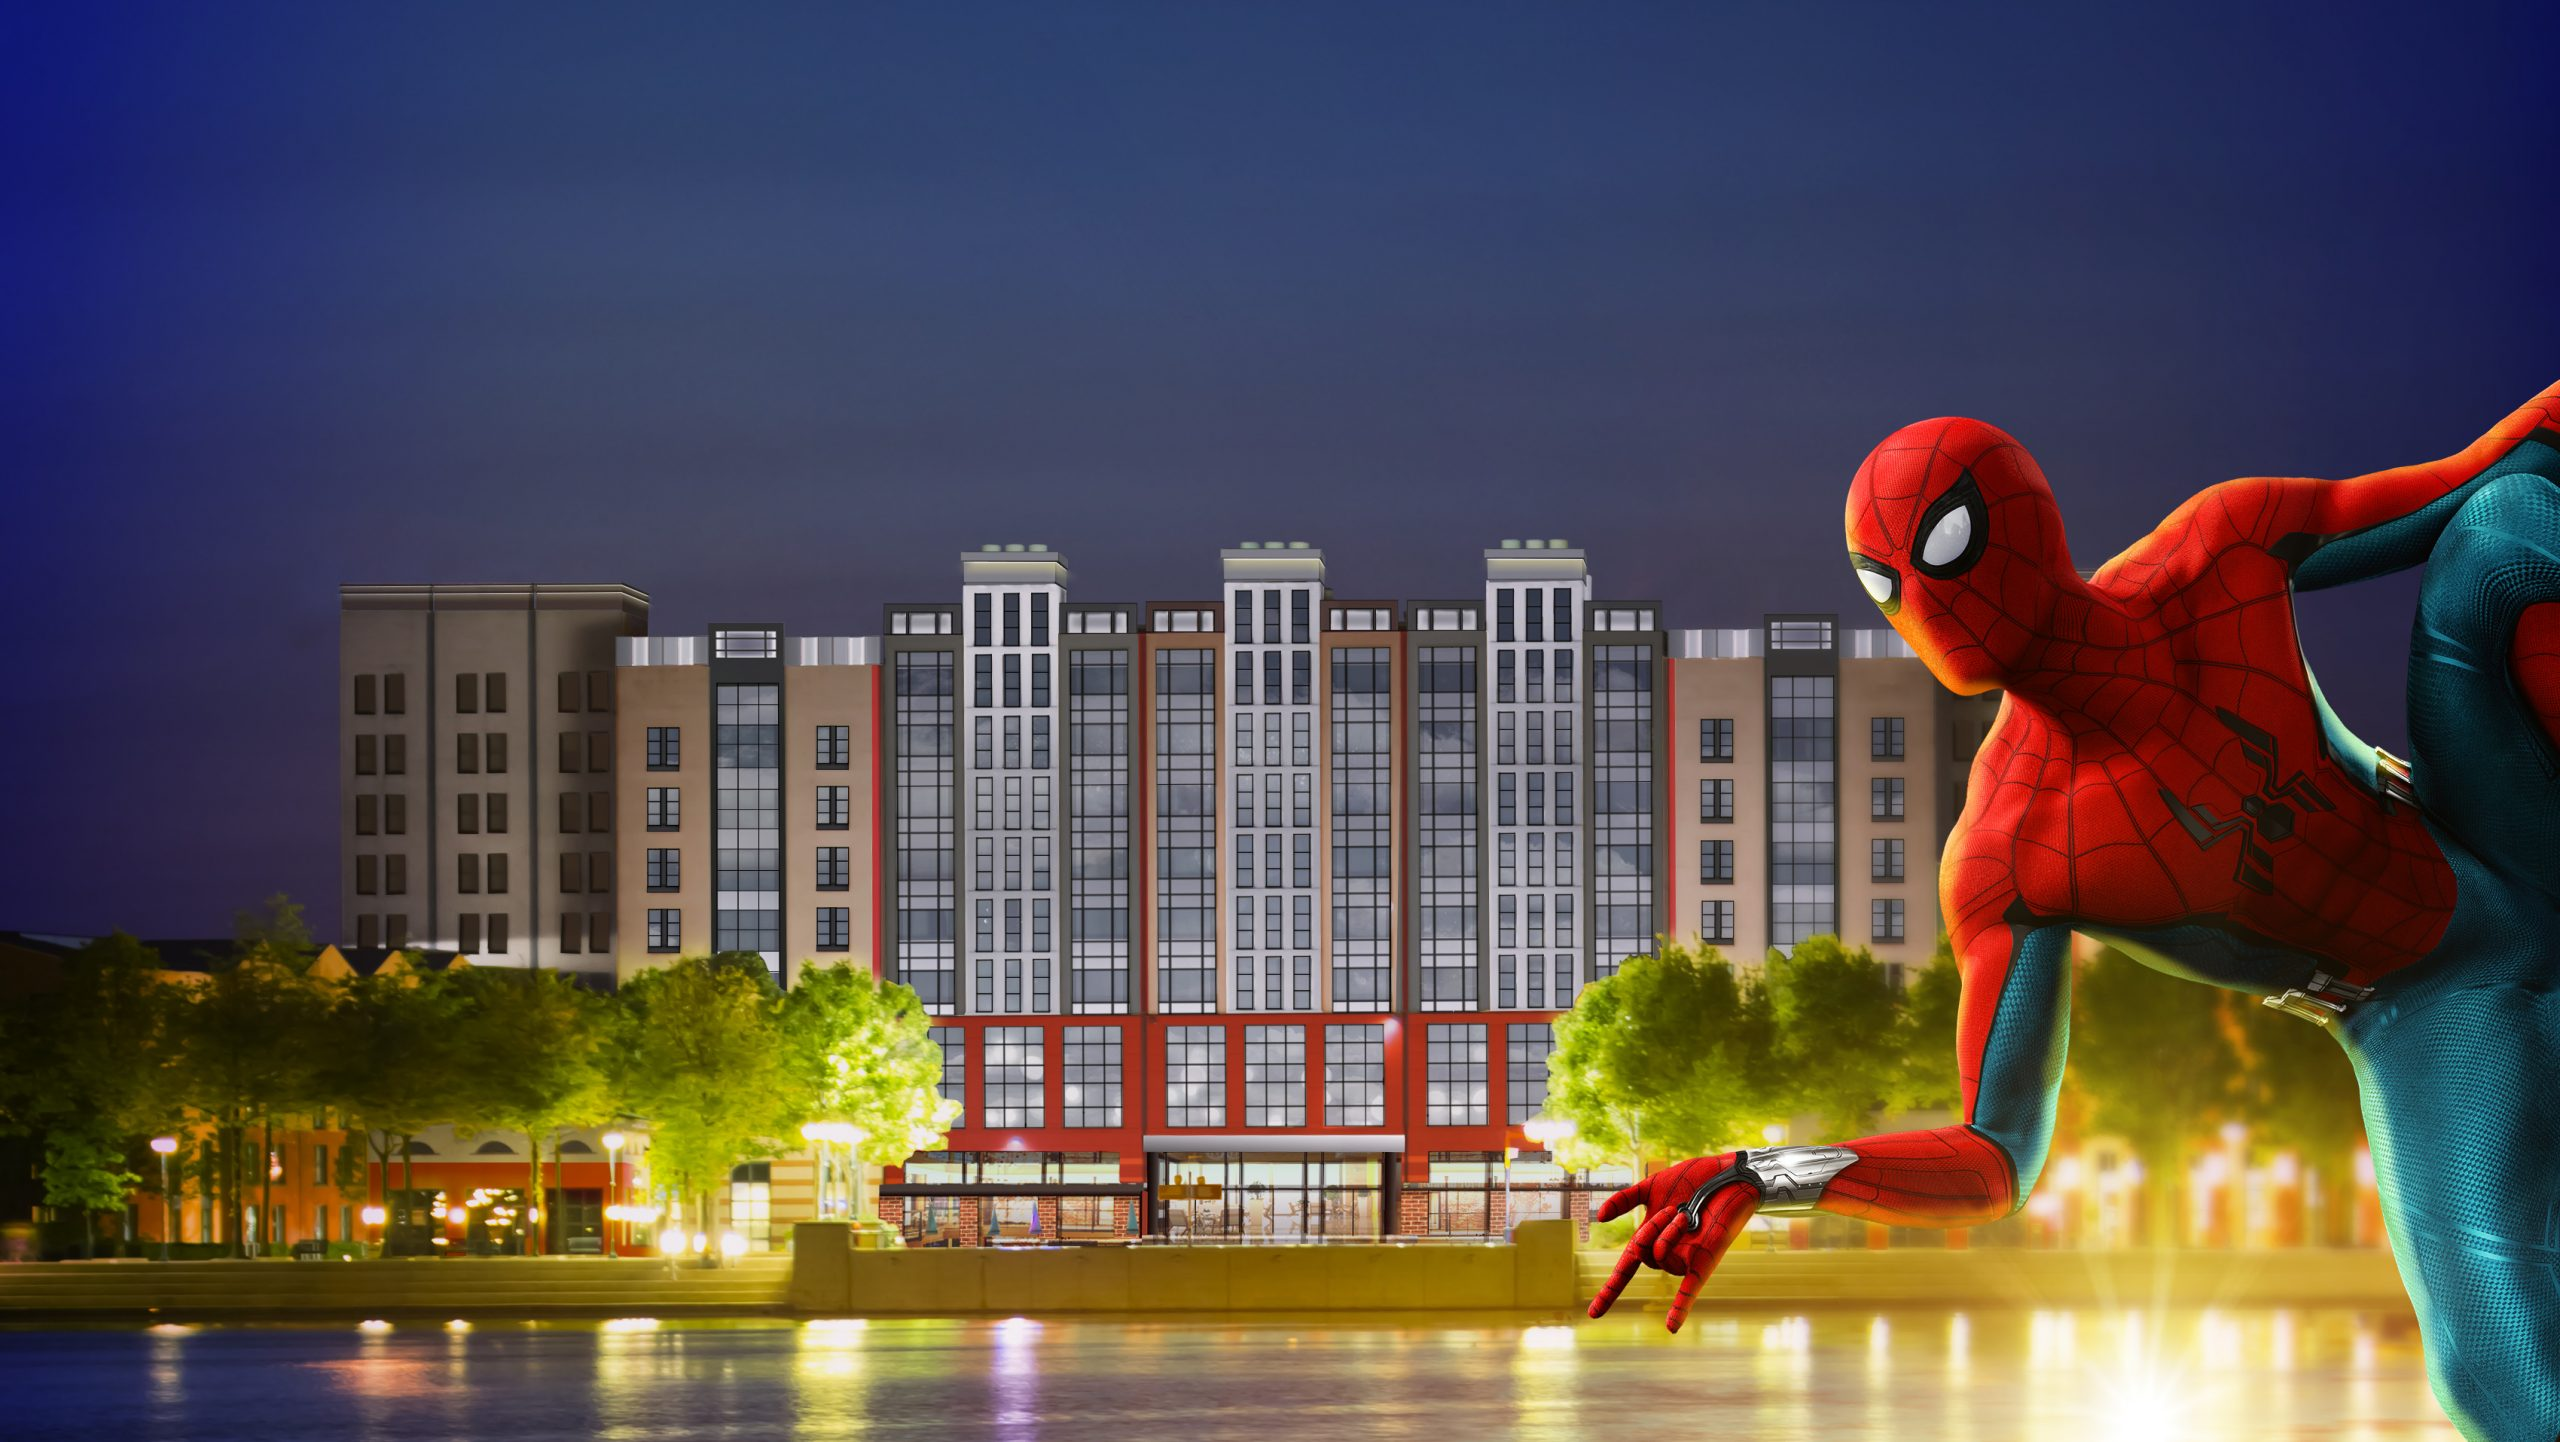 Disney_Hotel_New_York_The_Art_of_Marvel